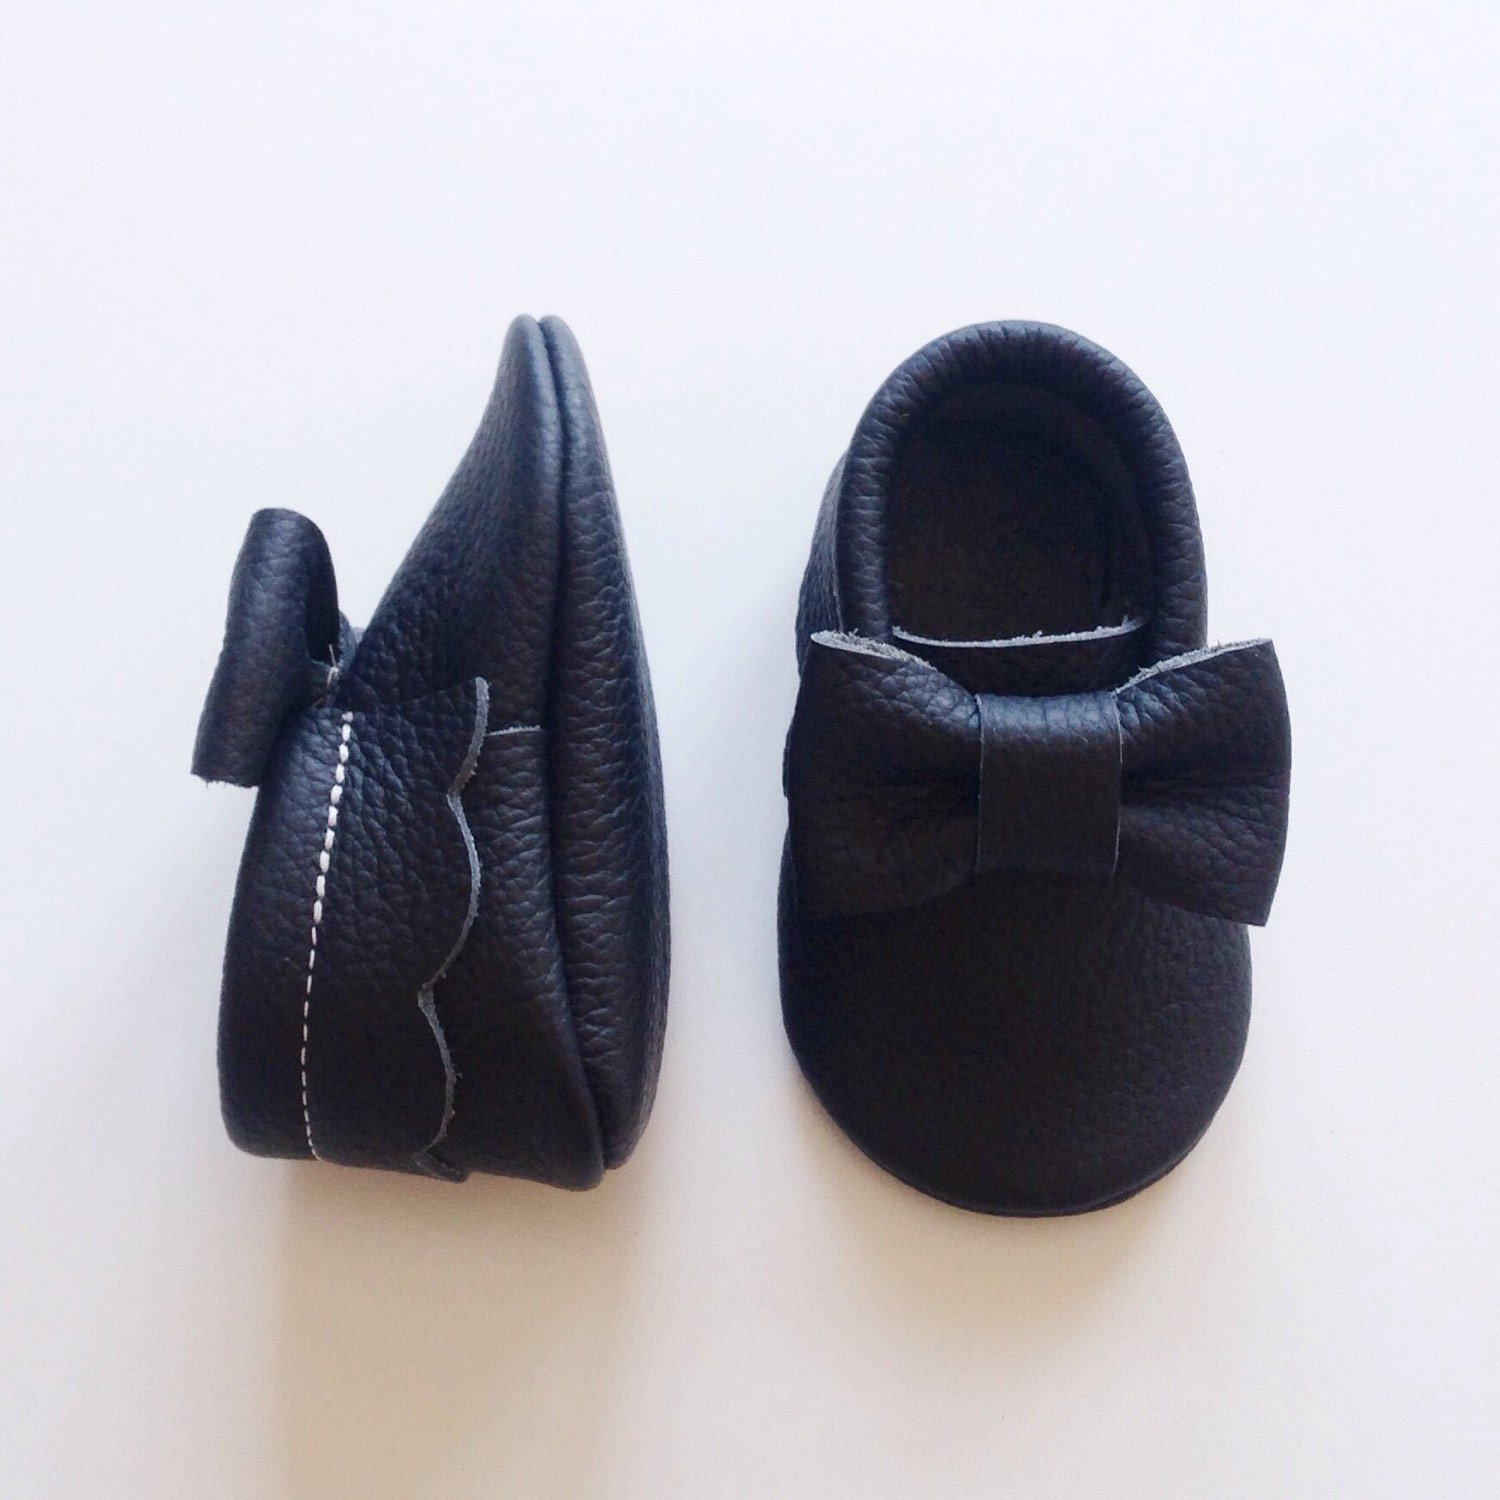 Find great deals on eBay for leather moccasins baby. Shop with confidence.